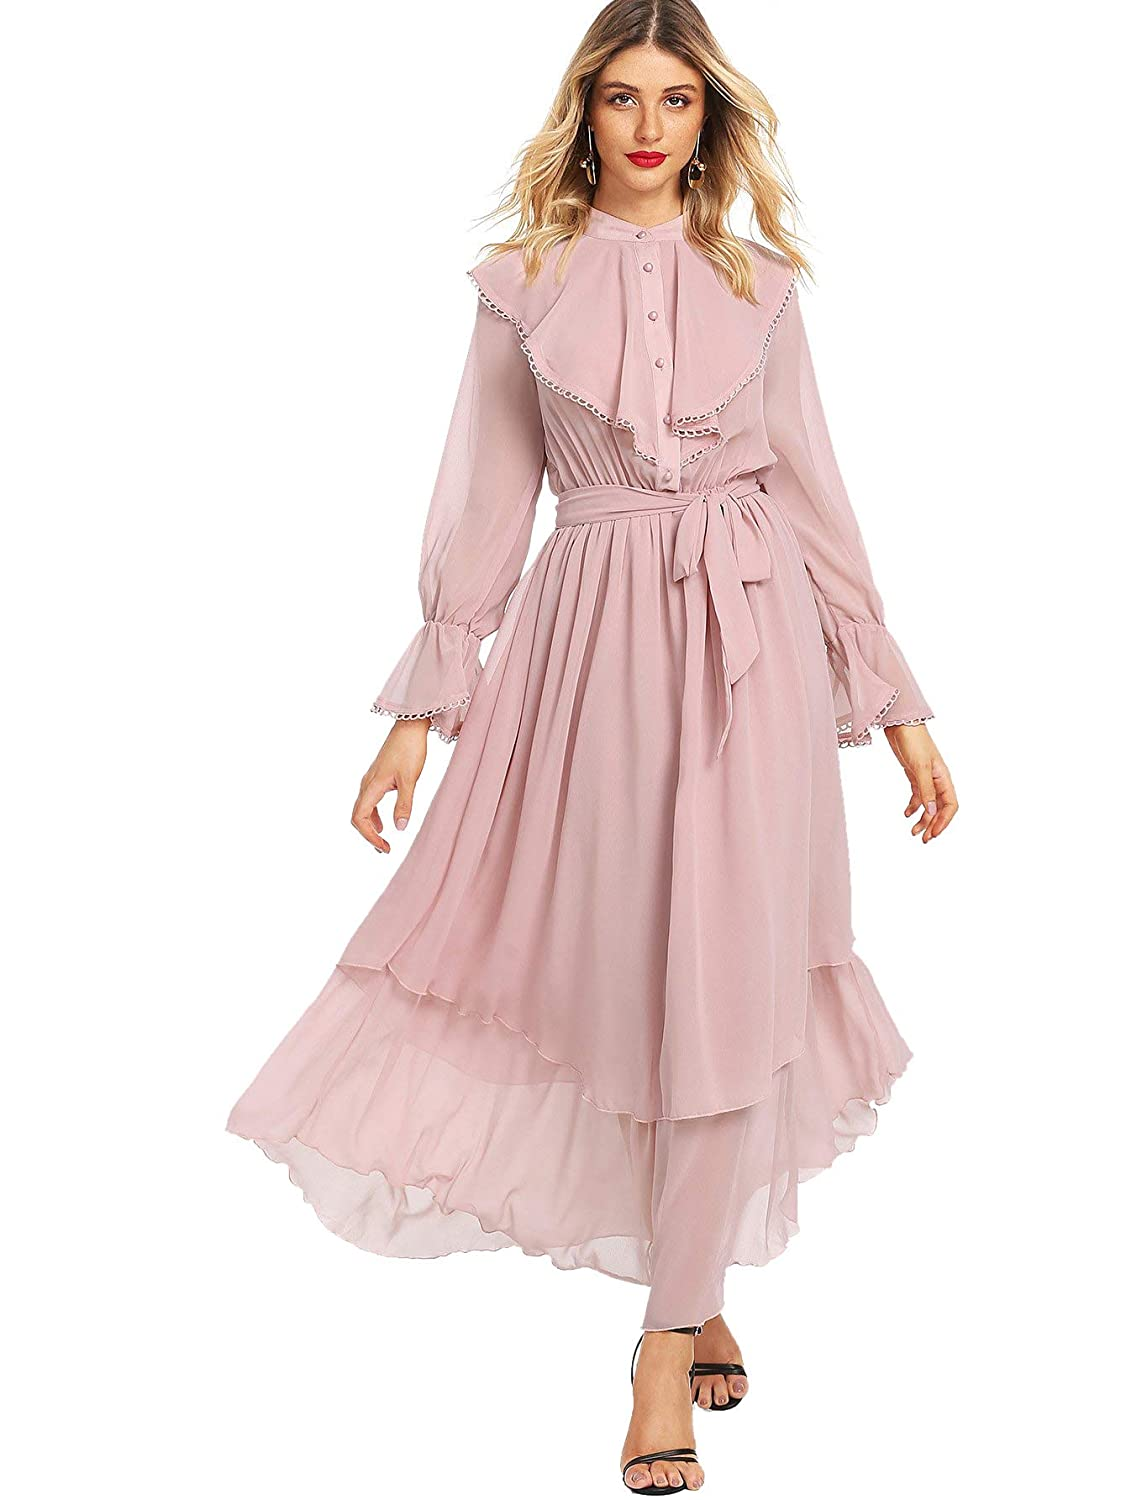 Old Fashioned Dresses | Old Dress Styles Milumia Womens Contrast Lace Ruffle Detail Crochet Trim Belted Tiered Layer Flowy Maxi Dress $26.99 AT vintagedancer.com